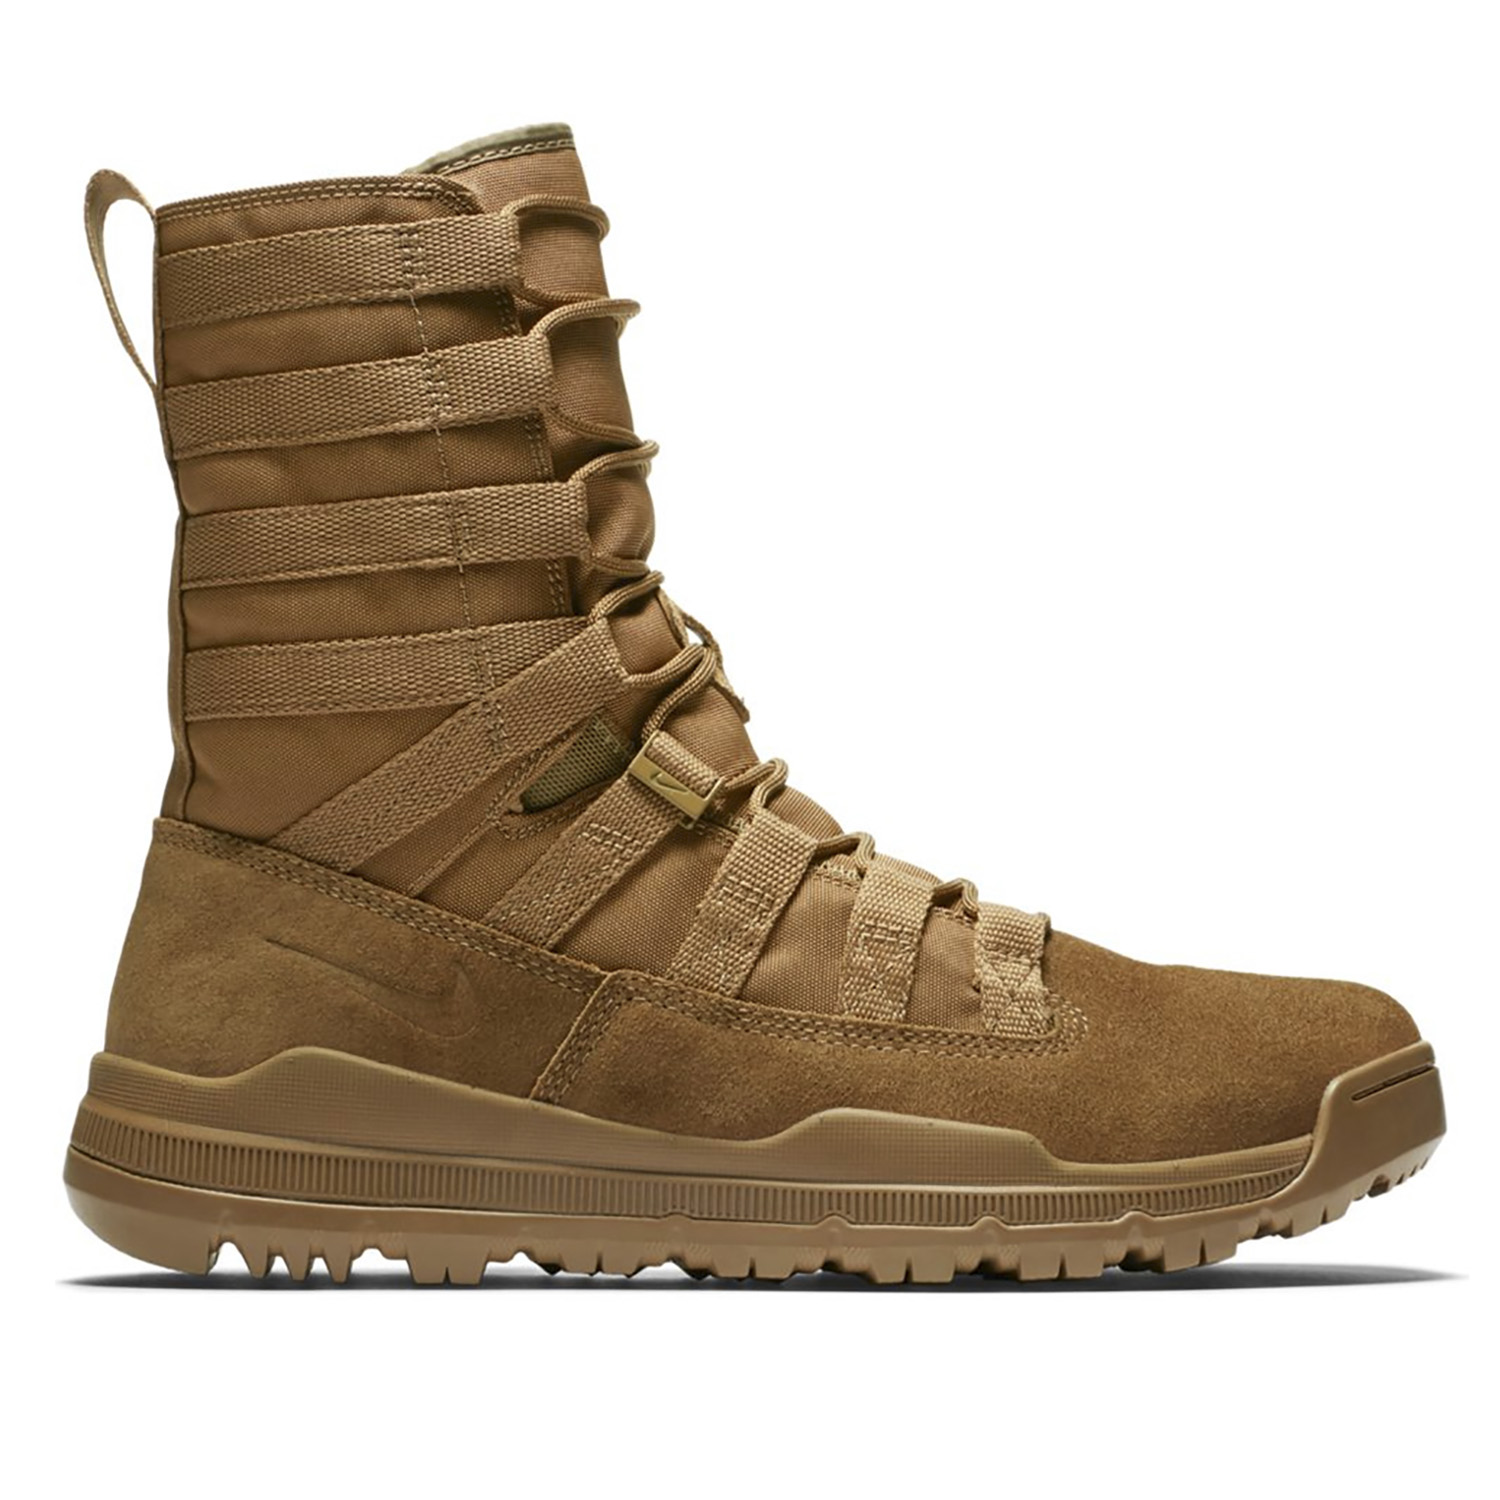 9face1750a53 Nike SFB Gen 2 LT Boot (OCP Coyote) AR 670-1 Compliant